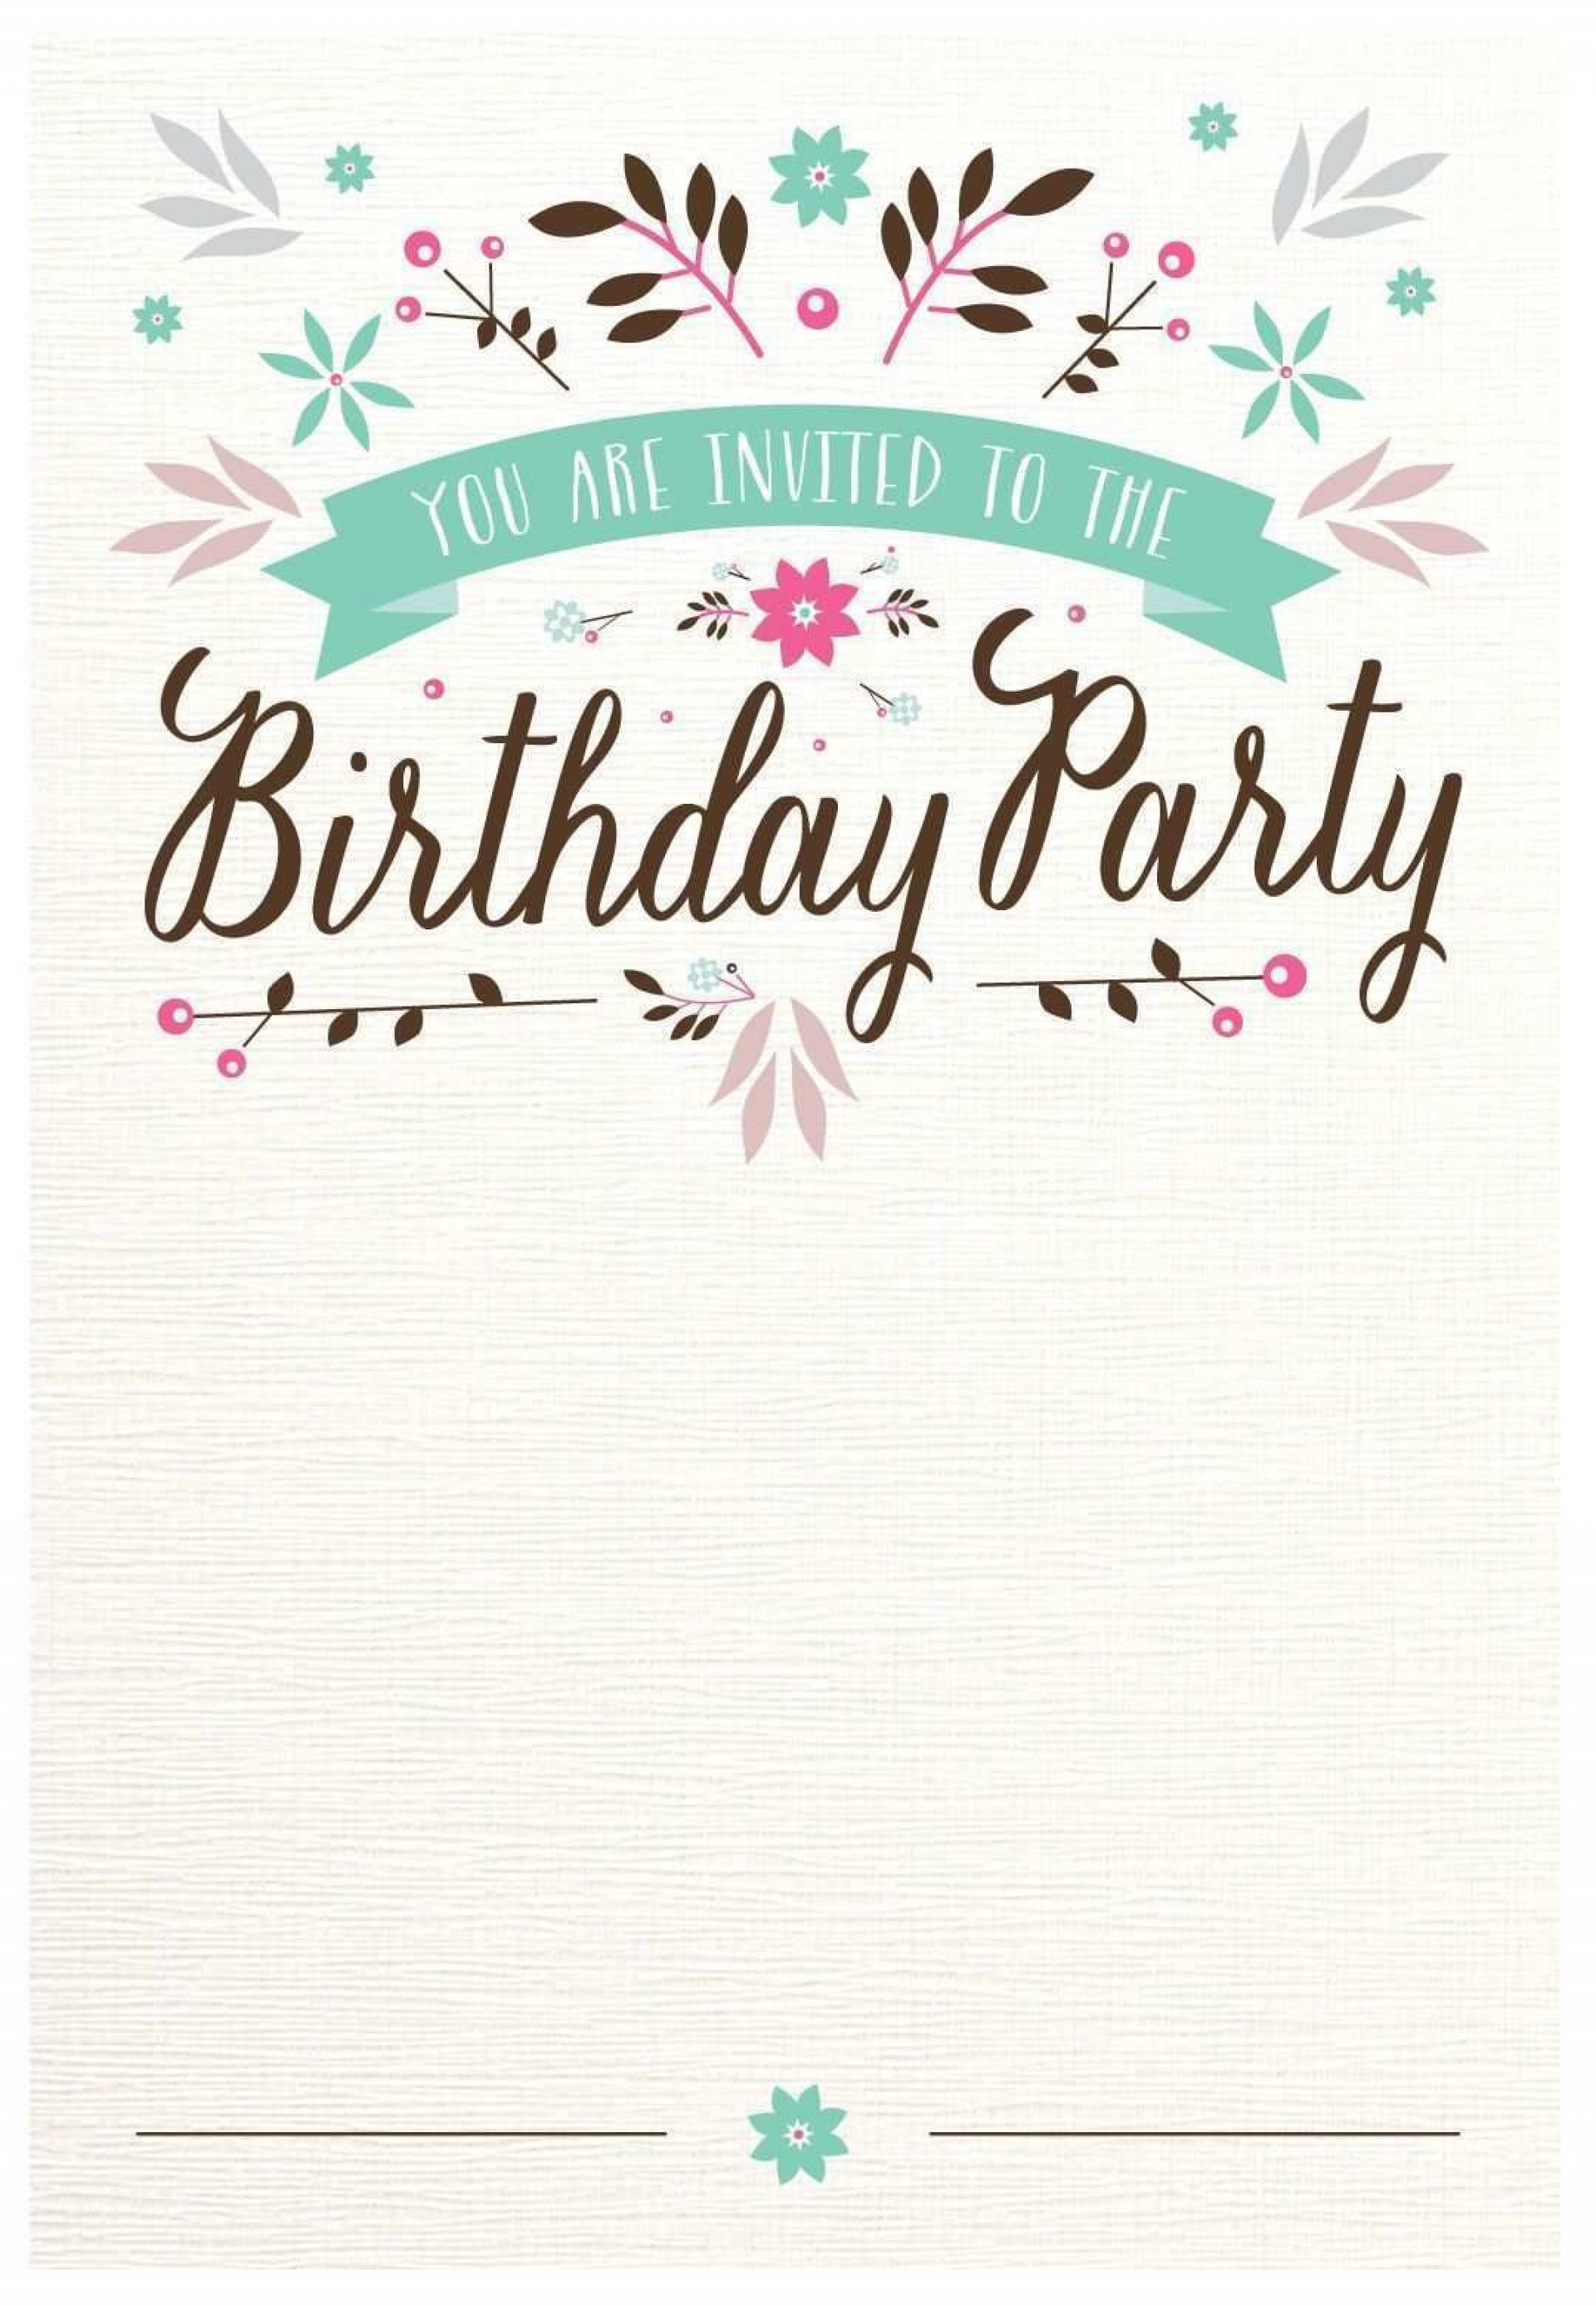 002 Remarkable Free Printable Birthday Card Template For Mac Idea 1920